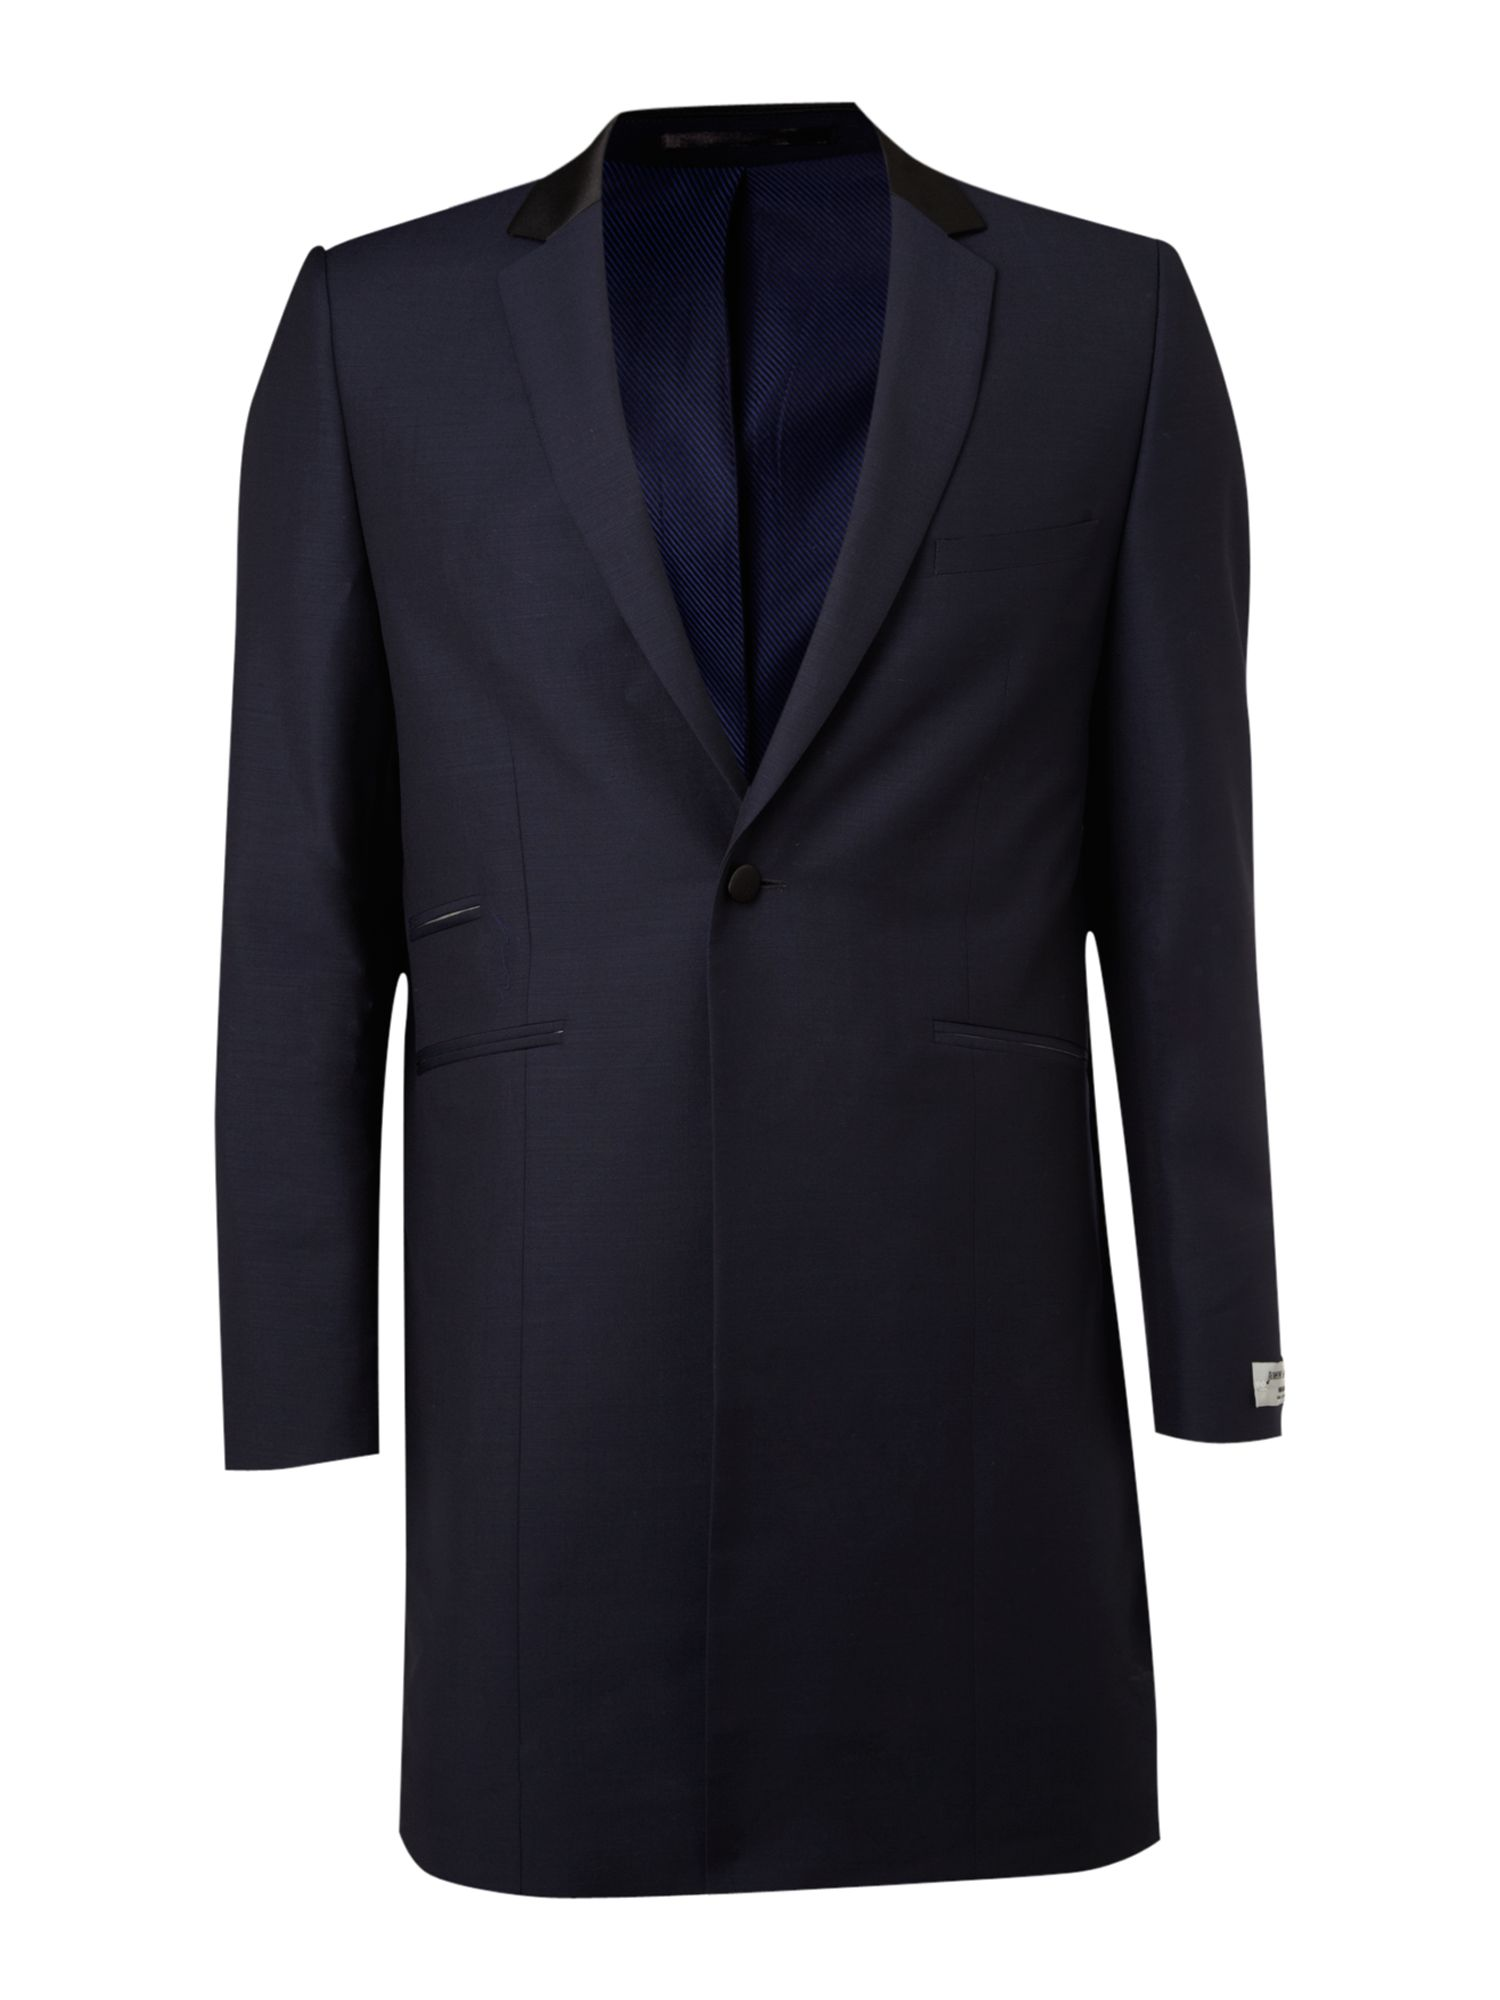 Farrell Mullery Mohair Frock Coat In Blue For Men Lyst